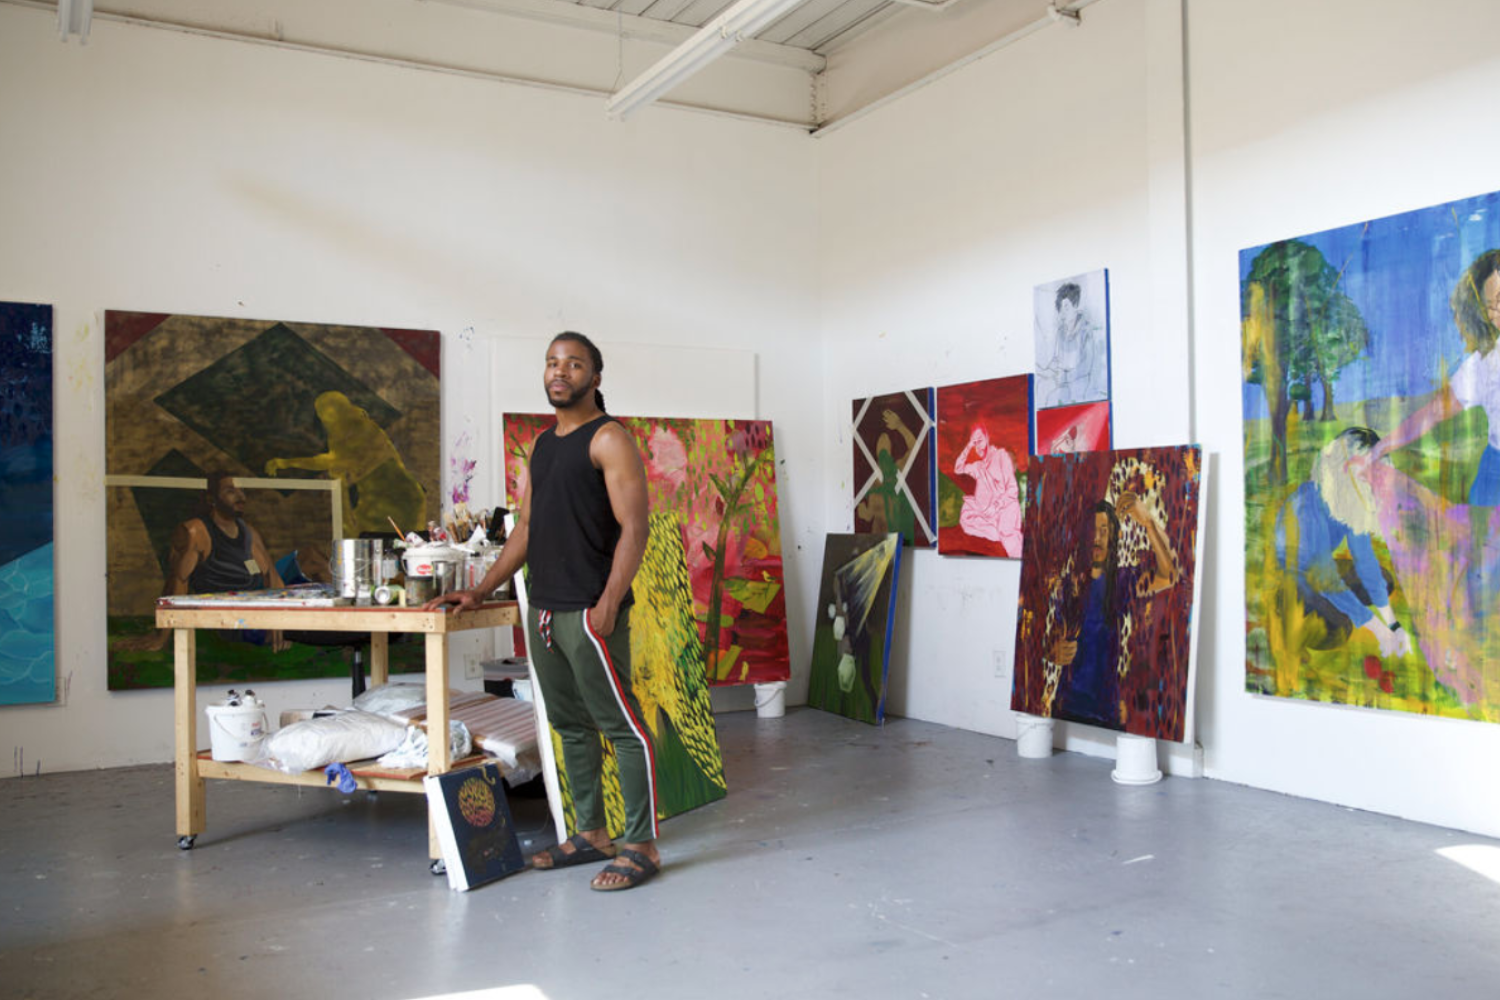 Portrait of Dominic Chambers in the artist's studio in New Haven, CT. Photo by Bek Andersen. Courtesy of the artist and Anna Zorina Gallery, New York City.